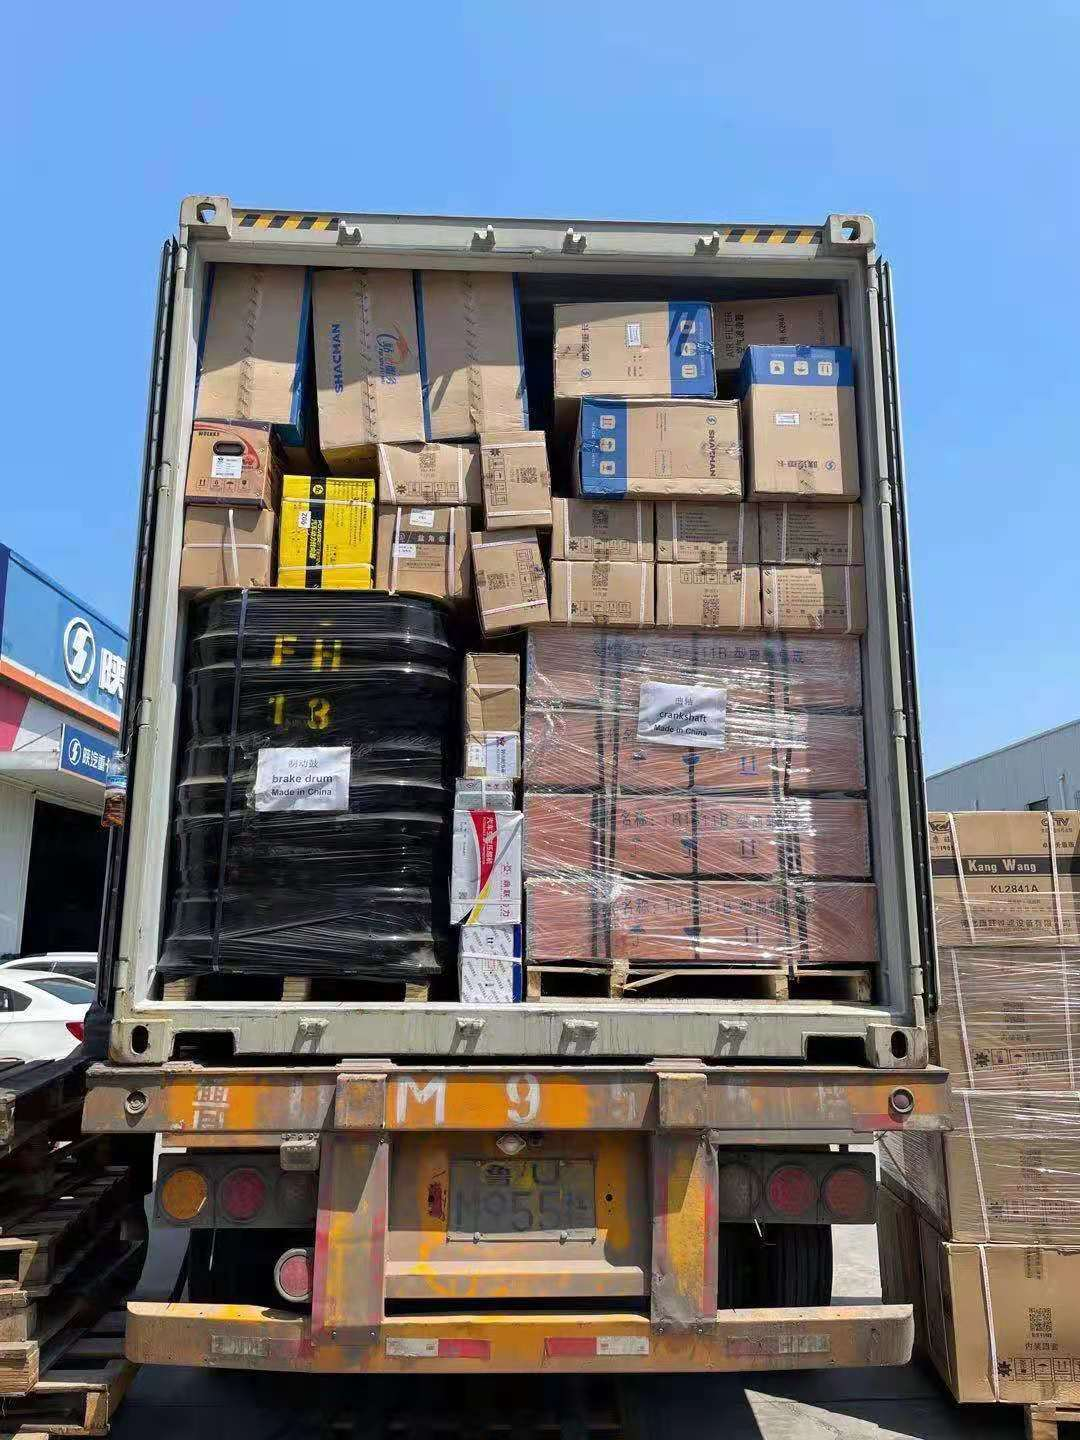 howo truck parts shipped in 40hq container in july.